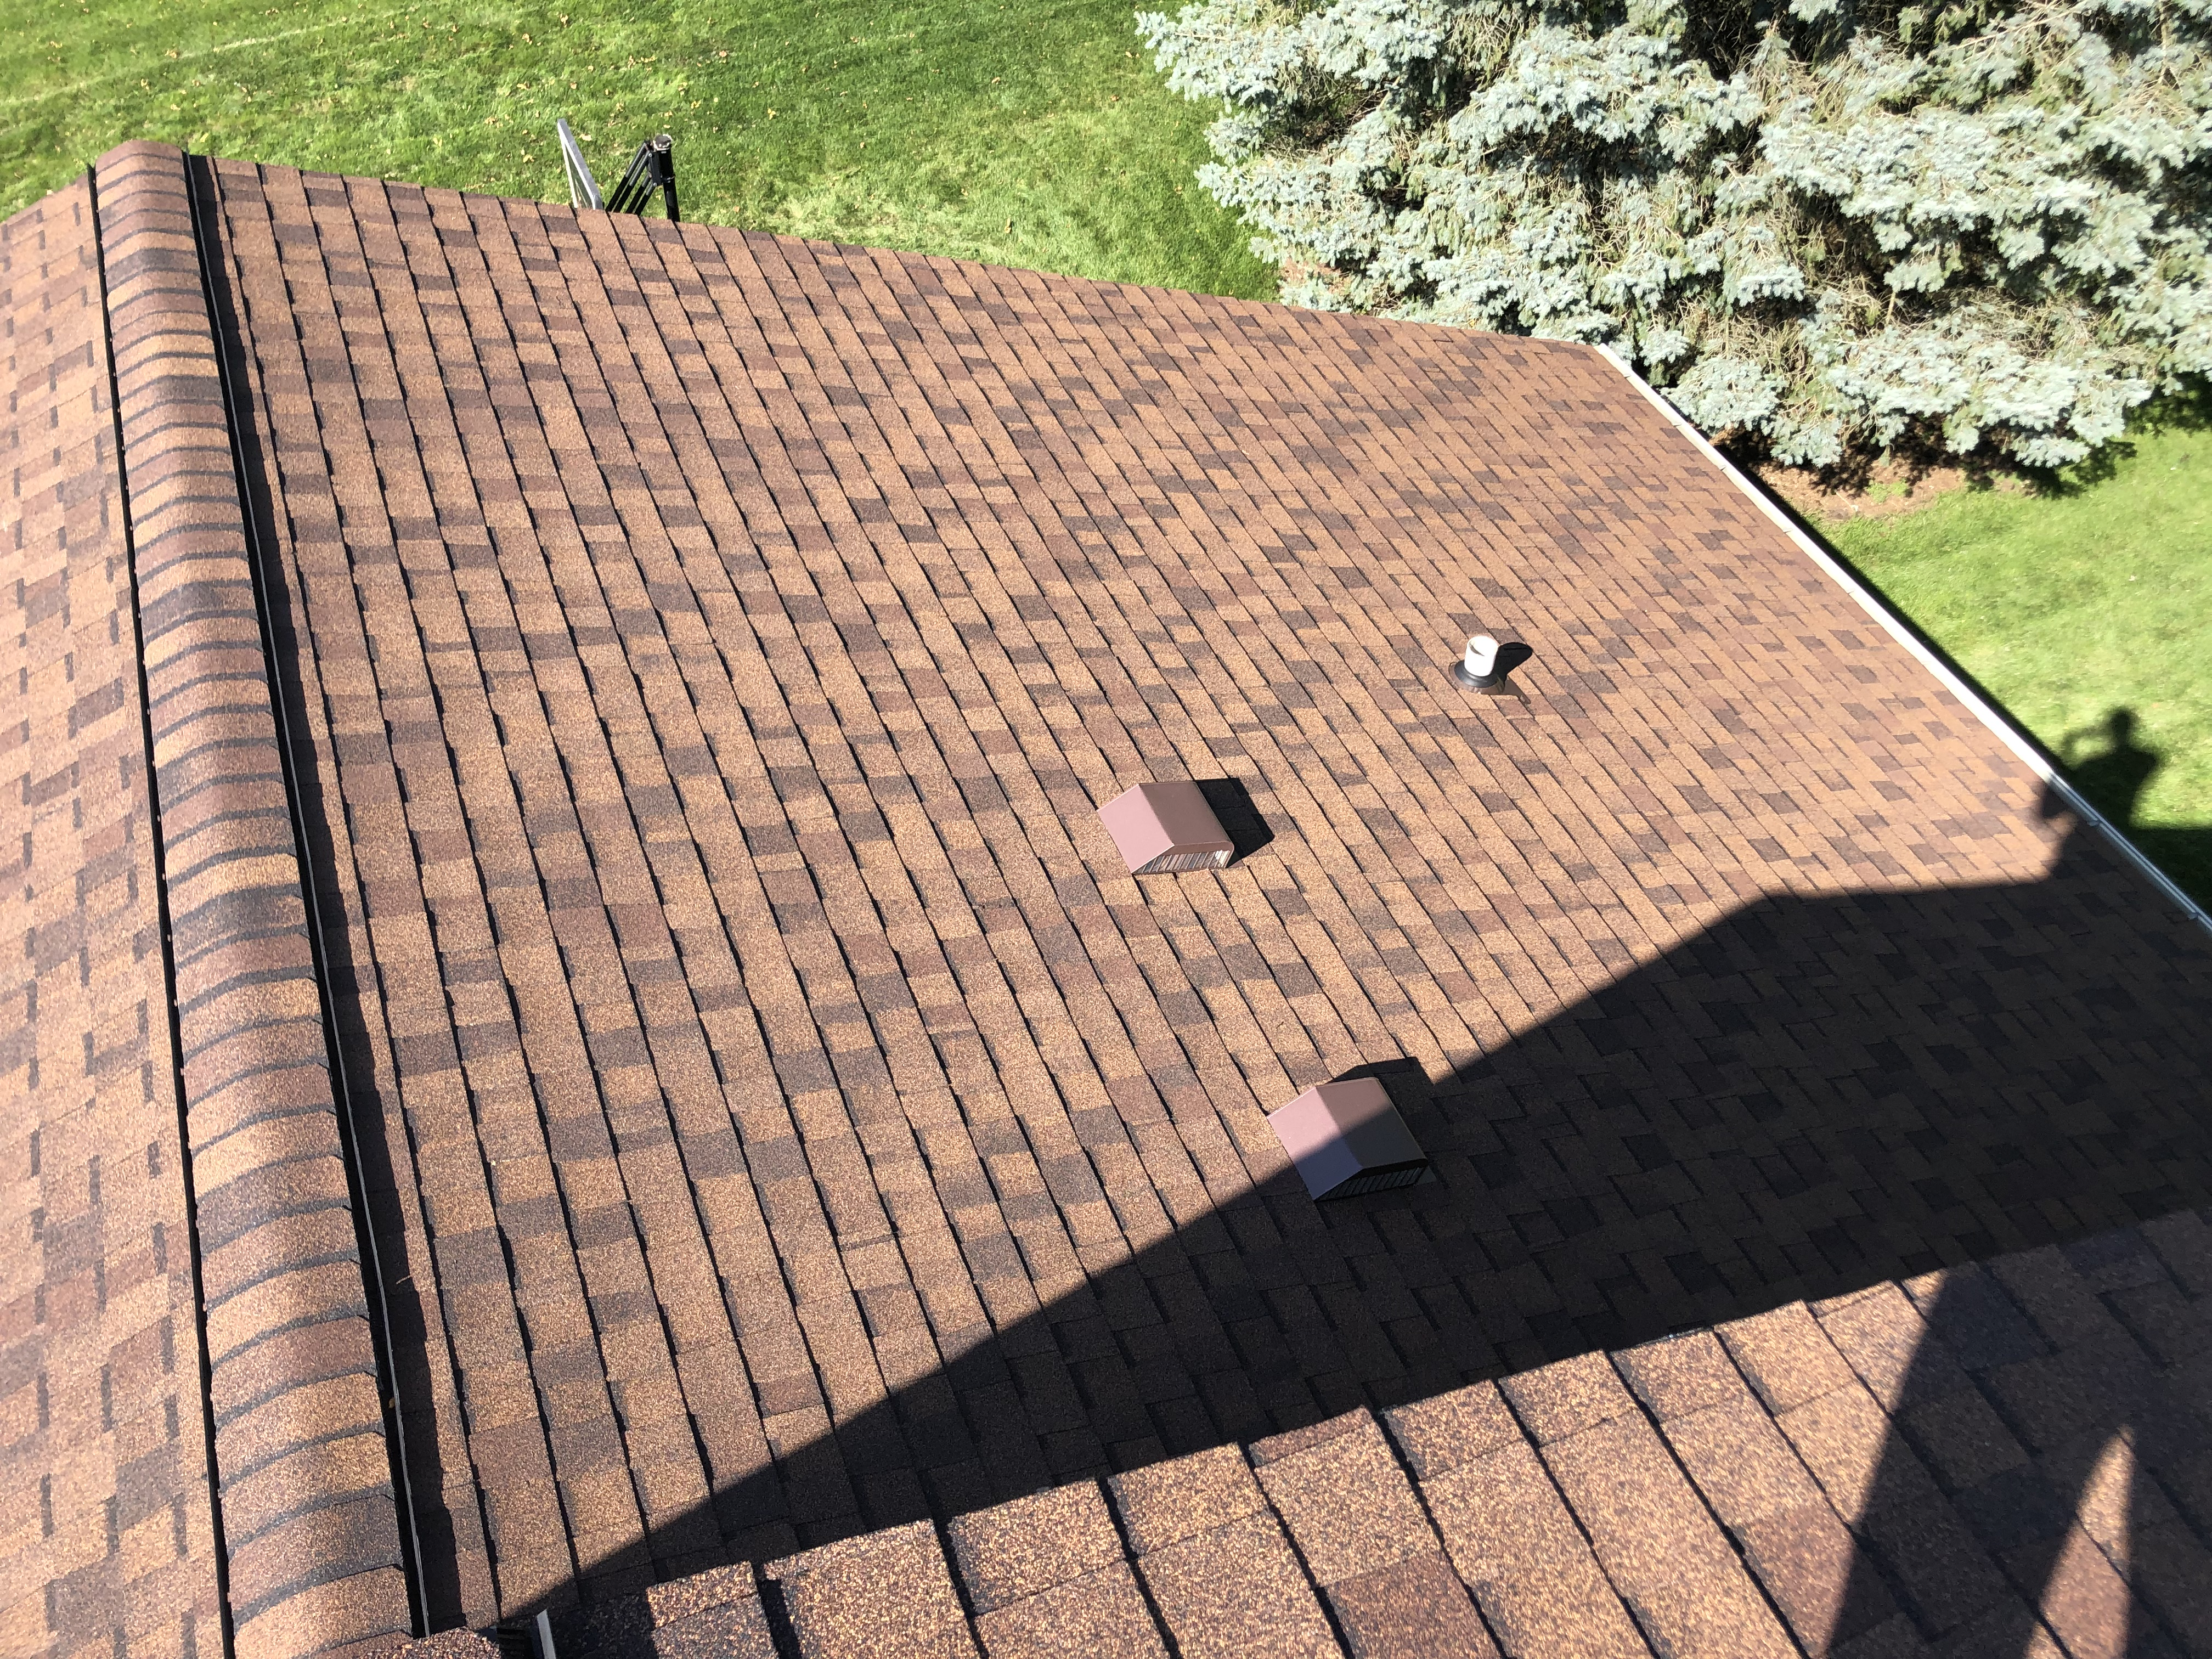 Wisconsin Roofing LLC | Brookfield | Upgraded Ventilation Unblocked Soffit Vents | Baffled Intake Chutes | CertainTeed Landmark Burnt Sienna Shingles | Vents